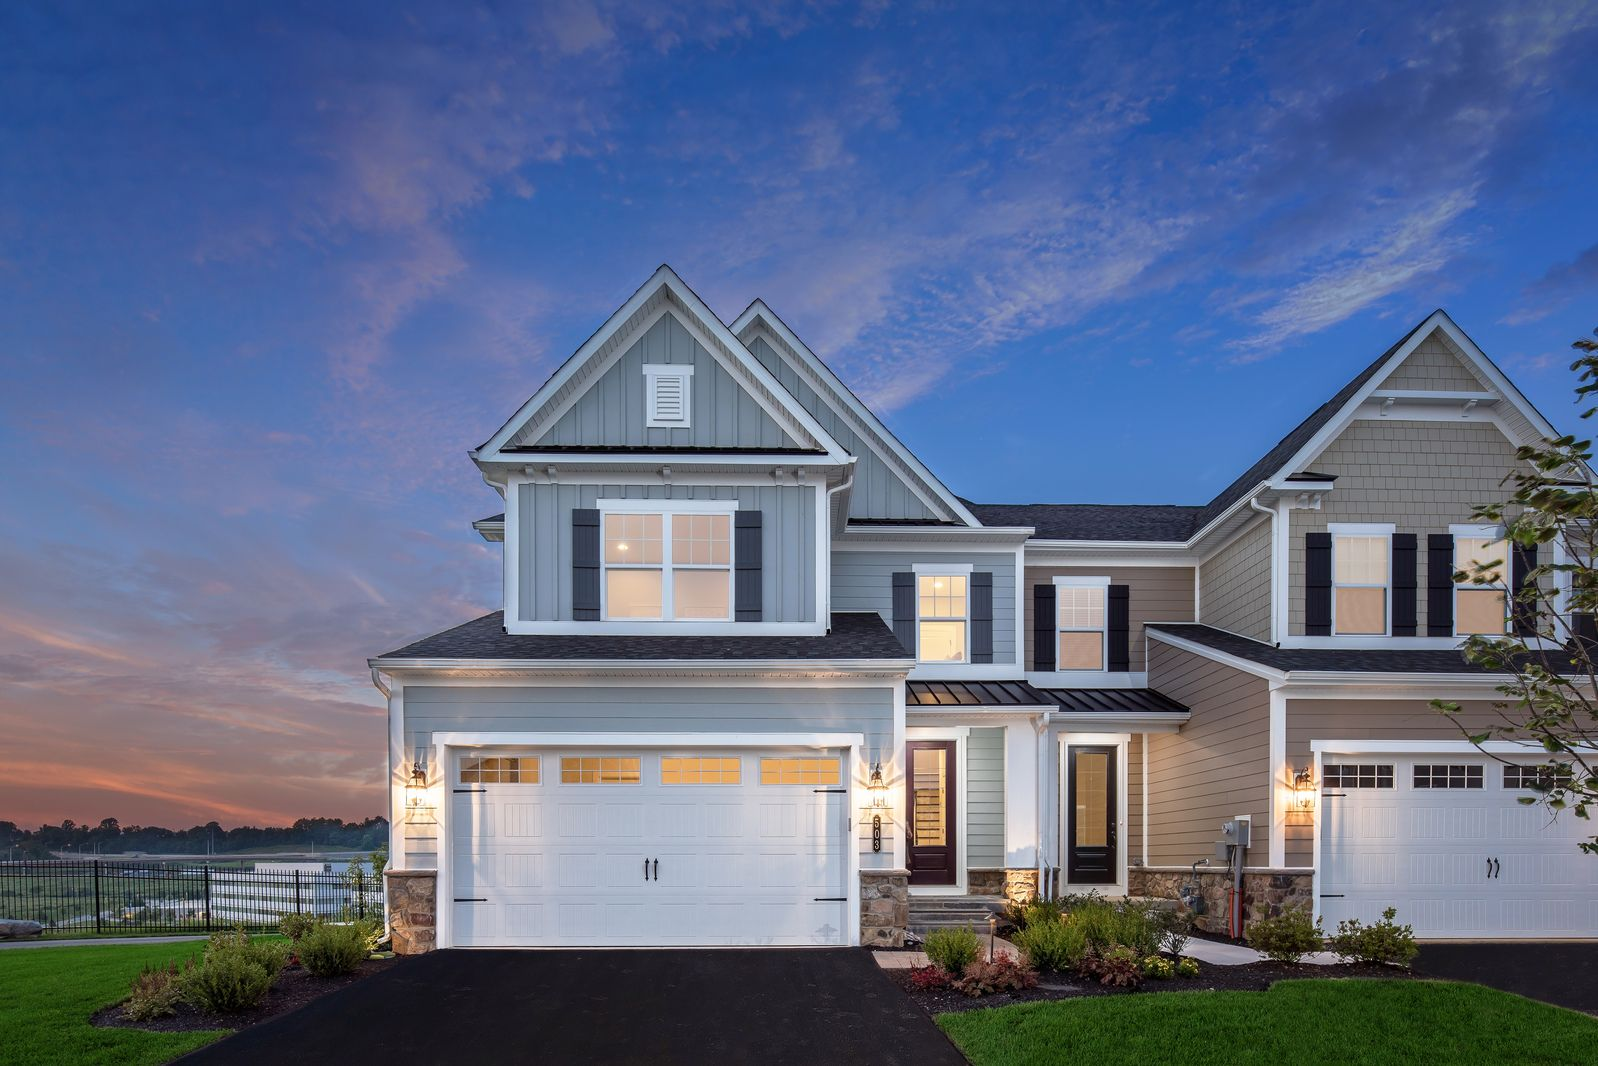 Welcome to Laurel Grove Townhomes & Duplexes:The closest new community to Pine-Richland Schools offering grand townhomes and duplexes. Low-Maintenance Living with Community Clubhouse and Pool. Click hereto schedule your visit.